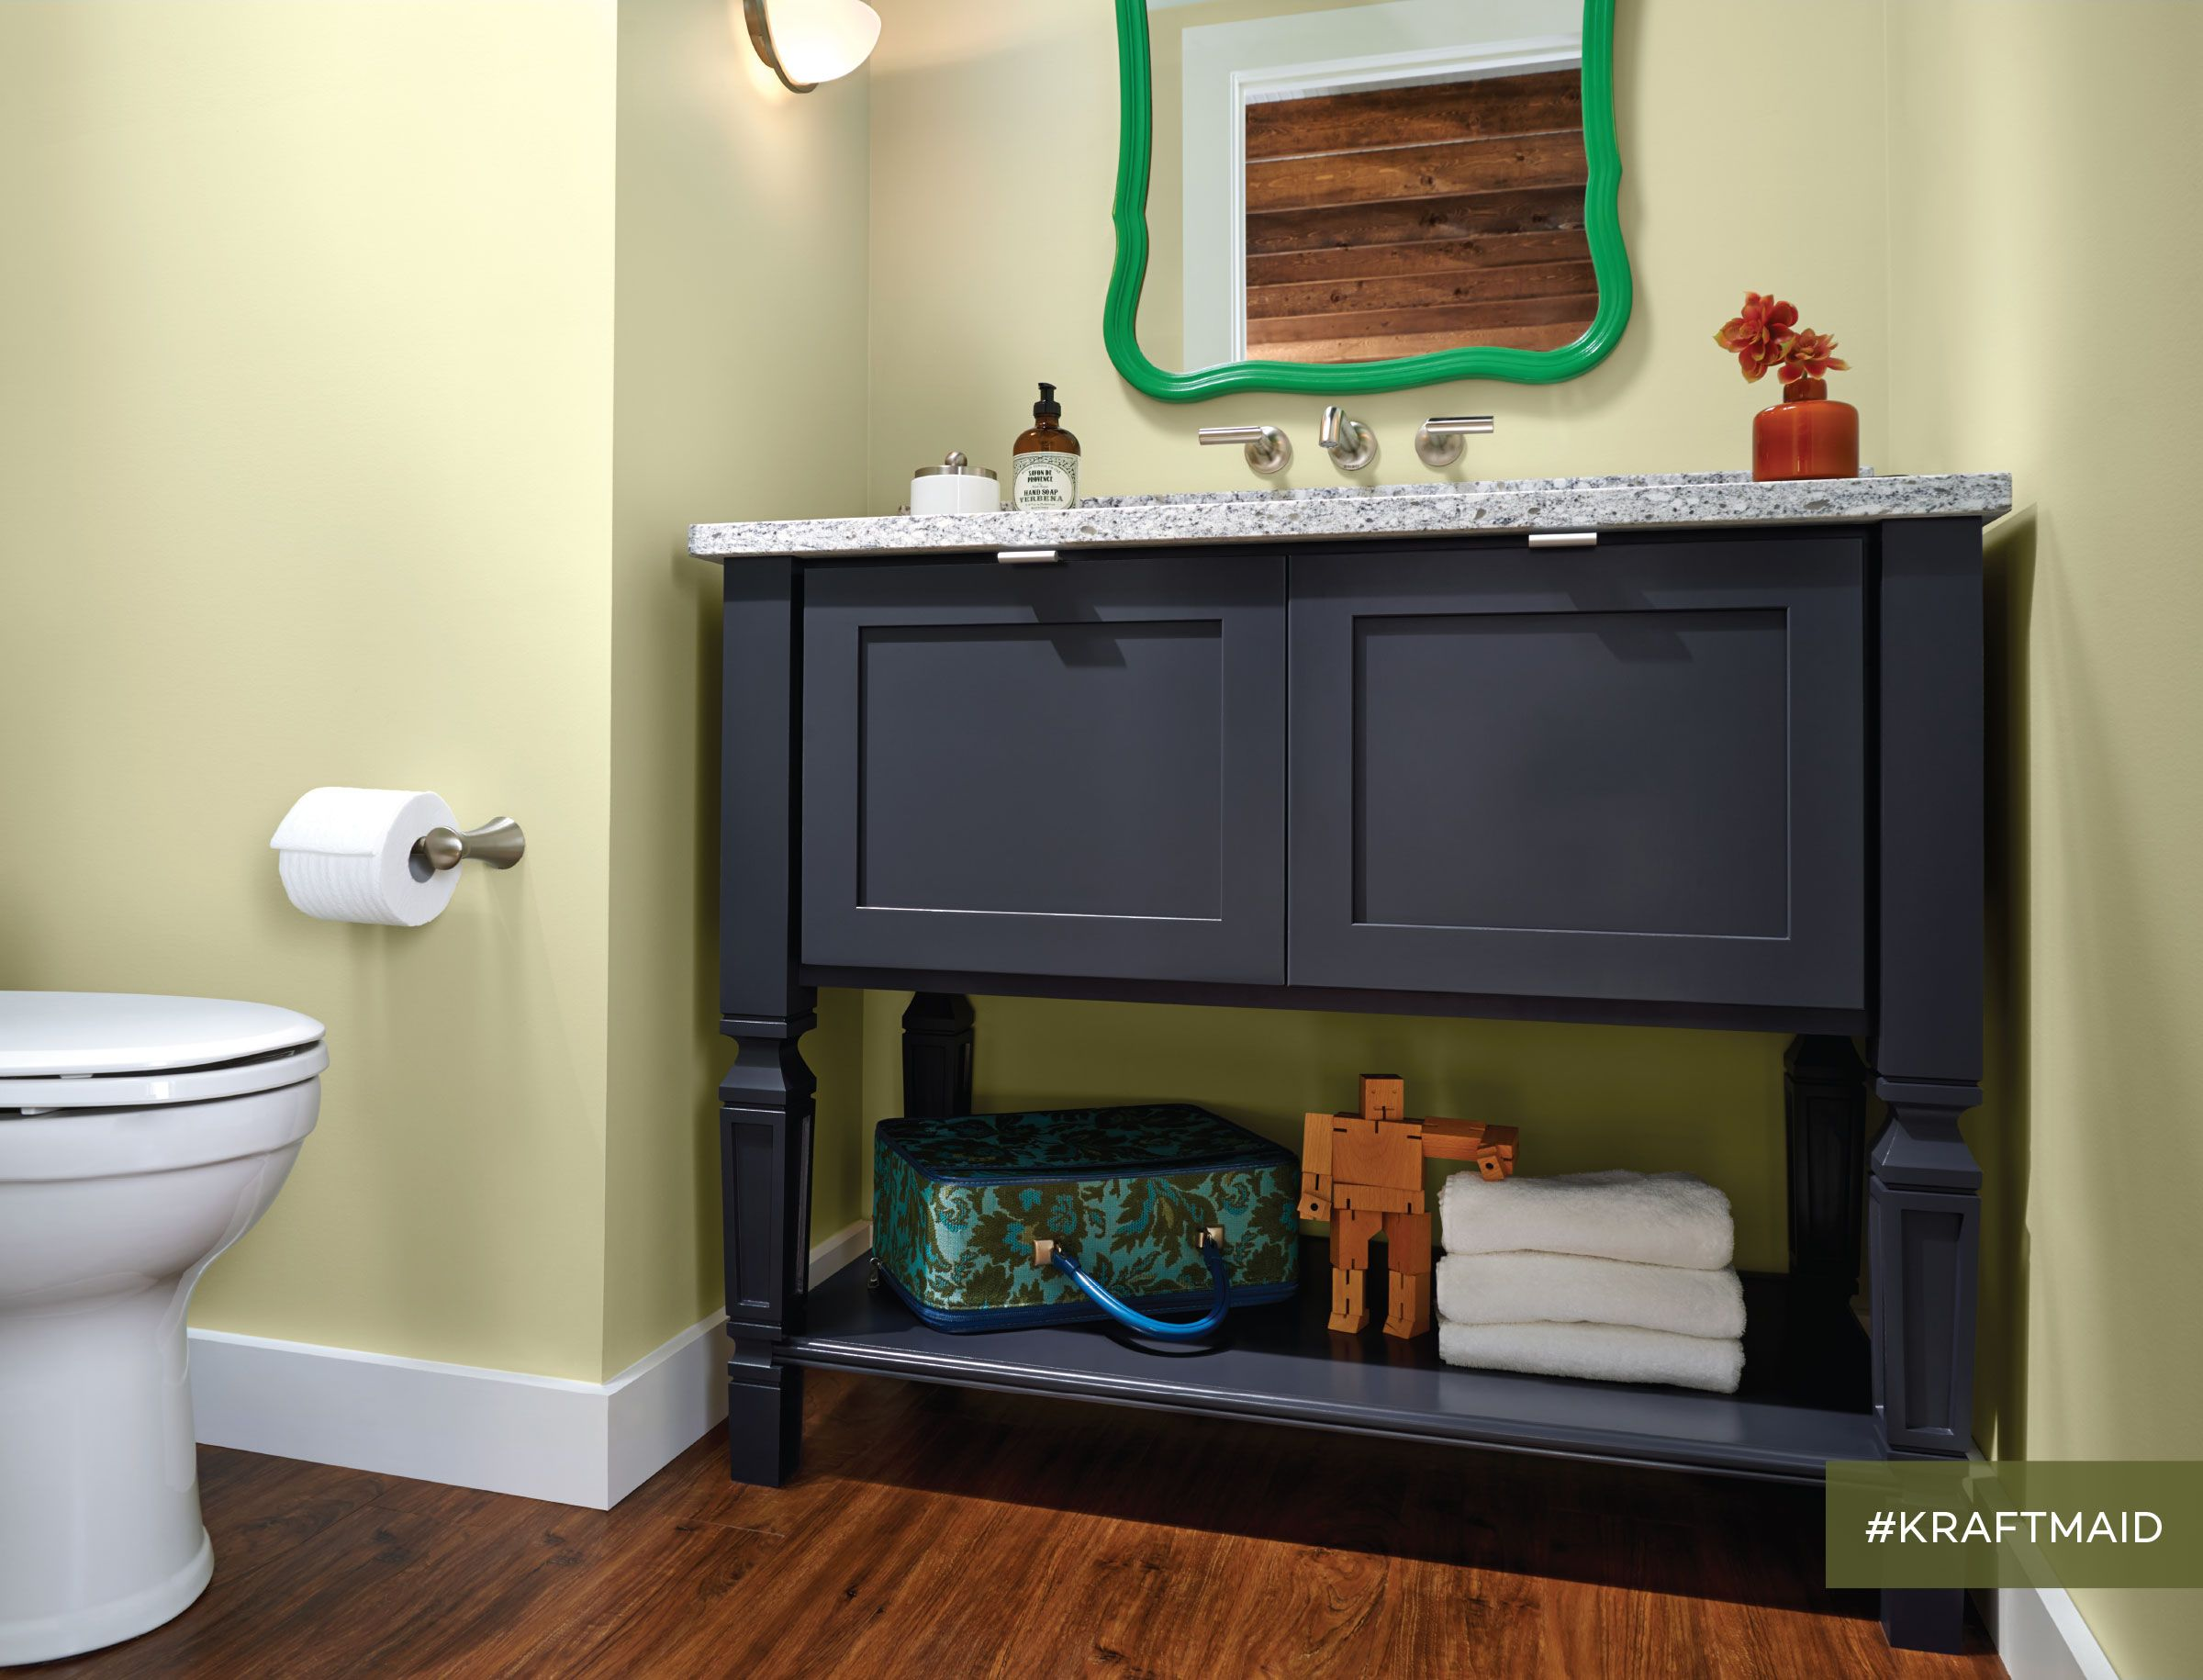 Kraftmaid S Console Vanity For The Bathroom Looks Like Furniture